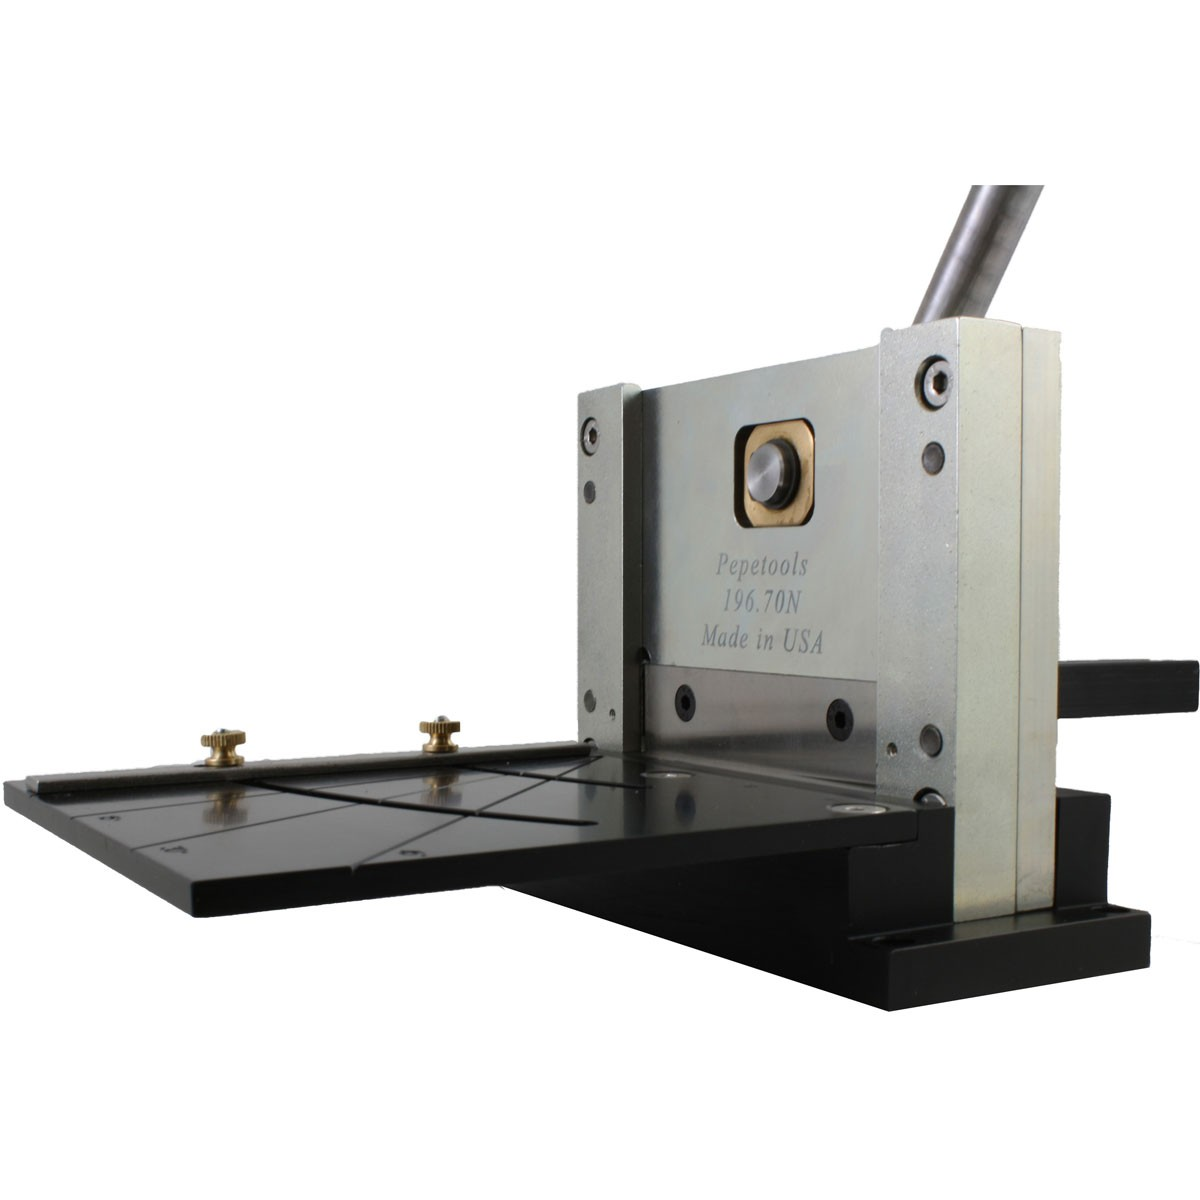 A Amp A Jewelry Supply 4 Guillotine Shear